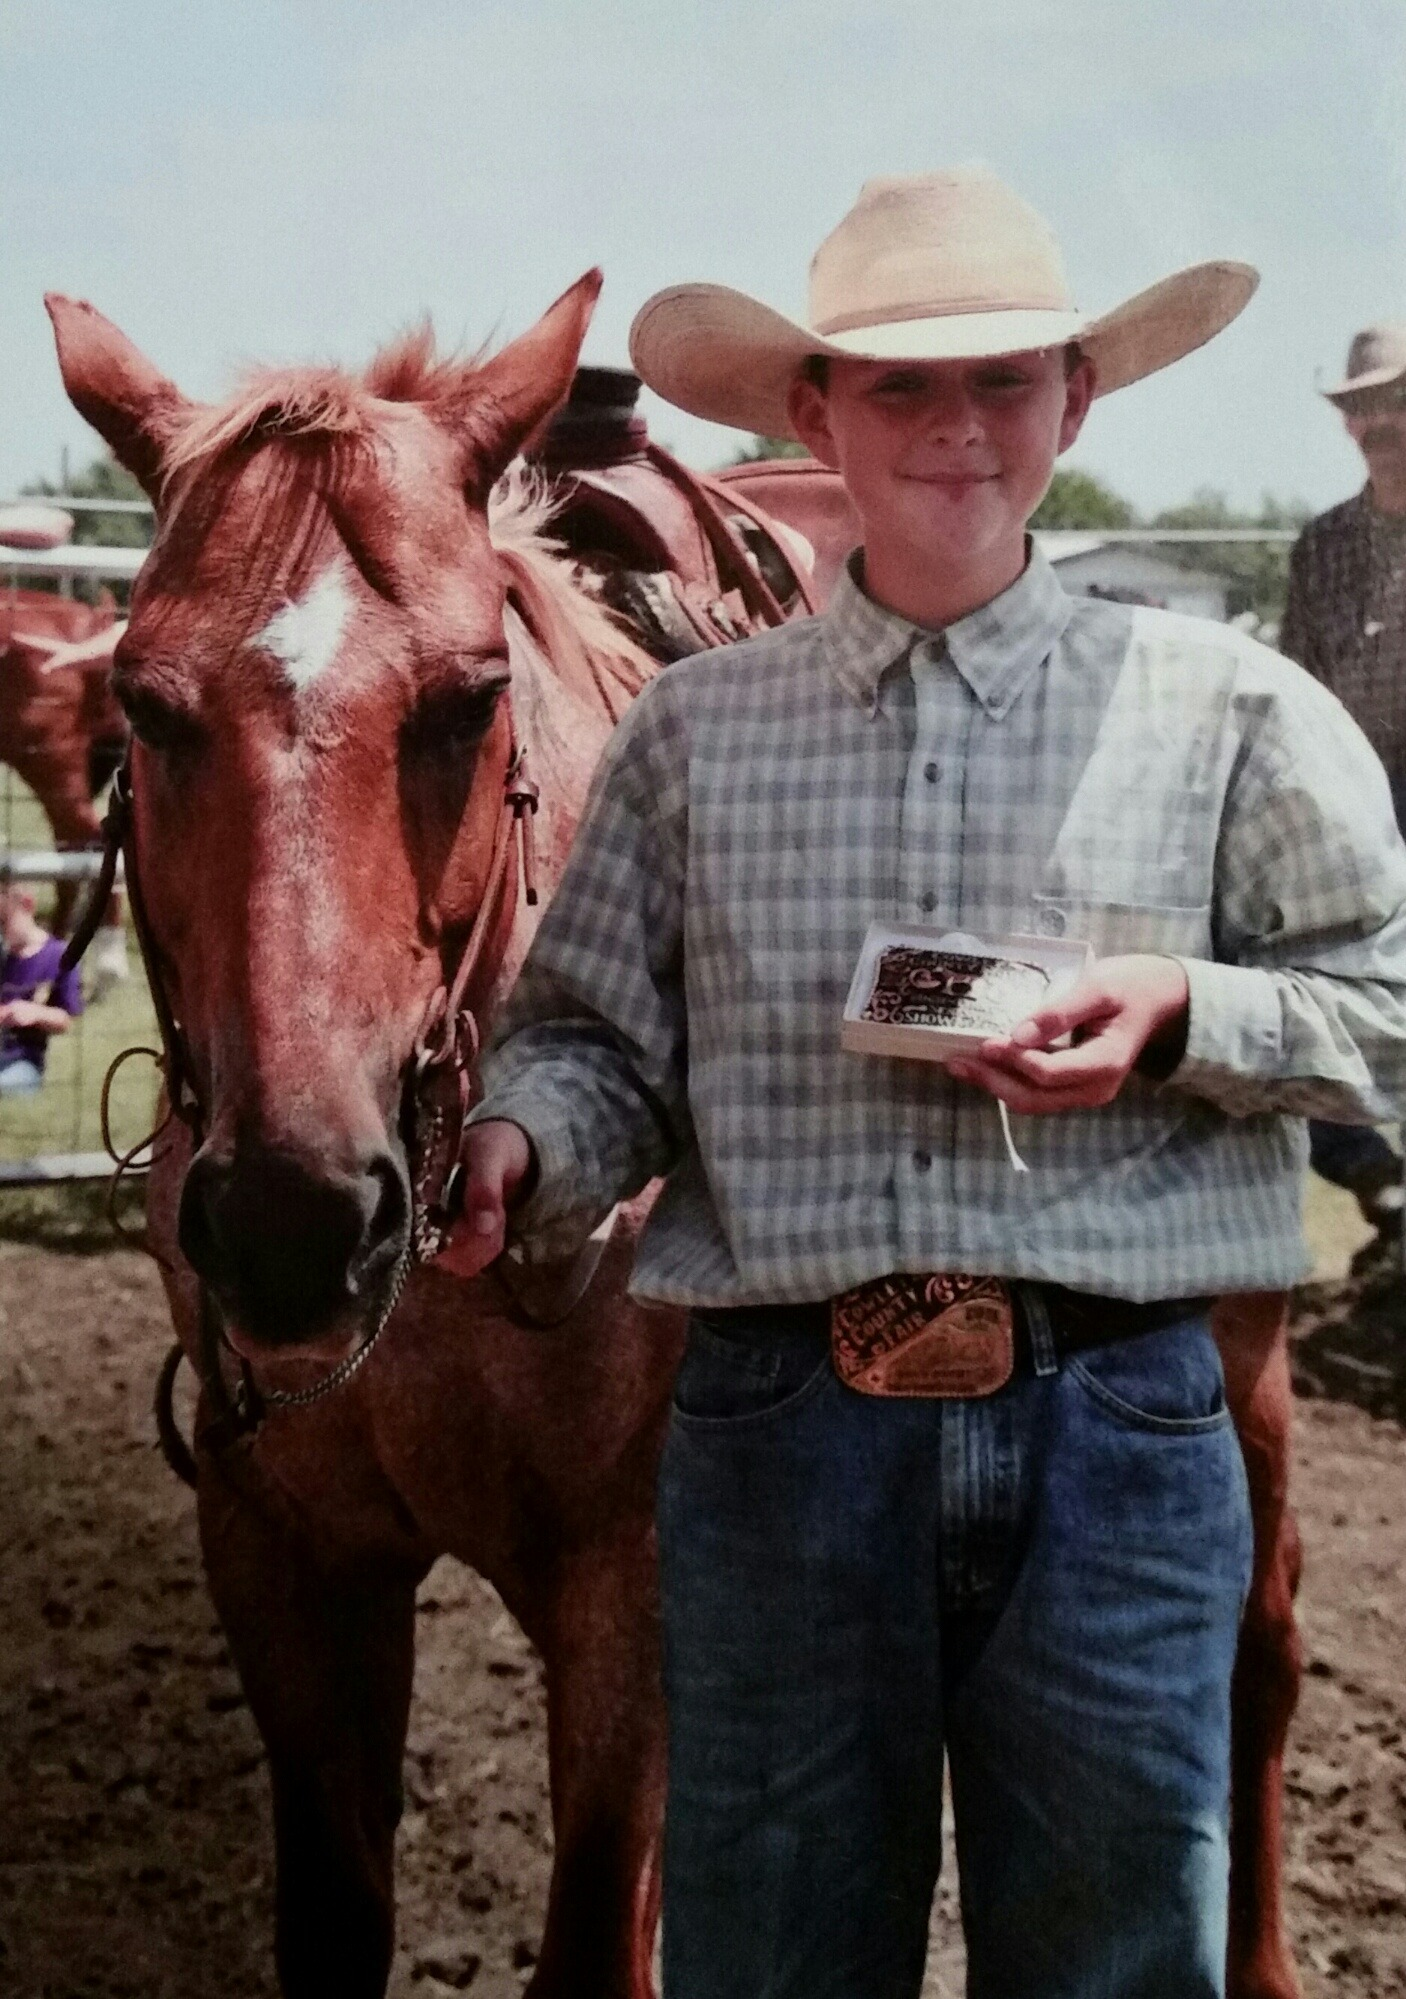 On big objective for Brayden Krepps, Cambridge,  was winning the highpoint buckle at the Cowley County 4-H Show, and he happily displayed his award after accomplishing that feat last year.